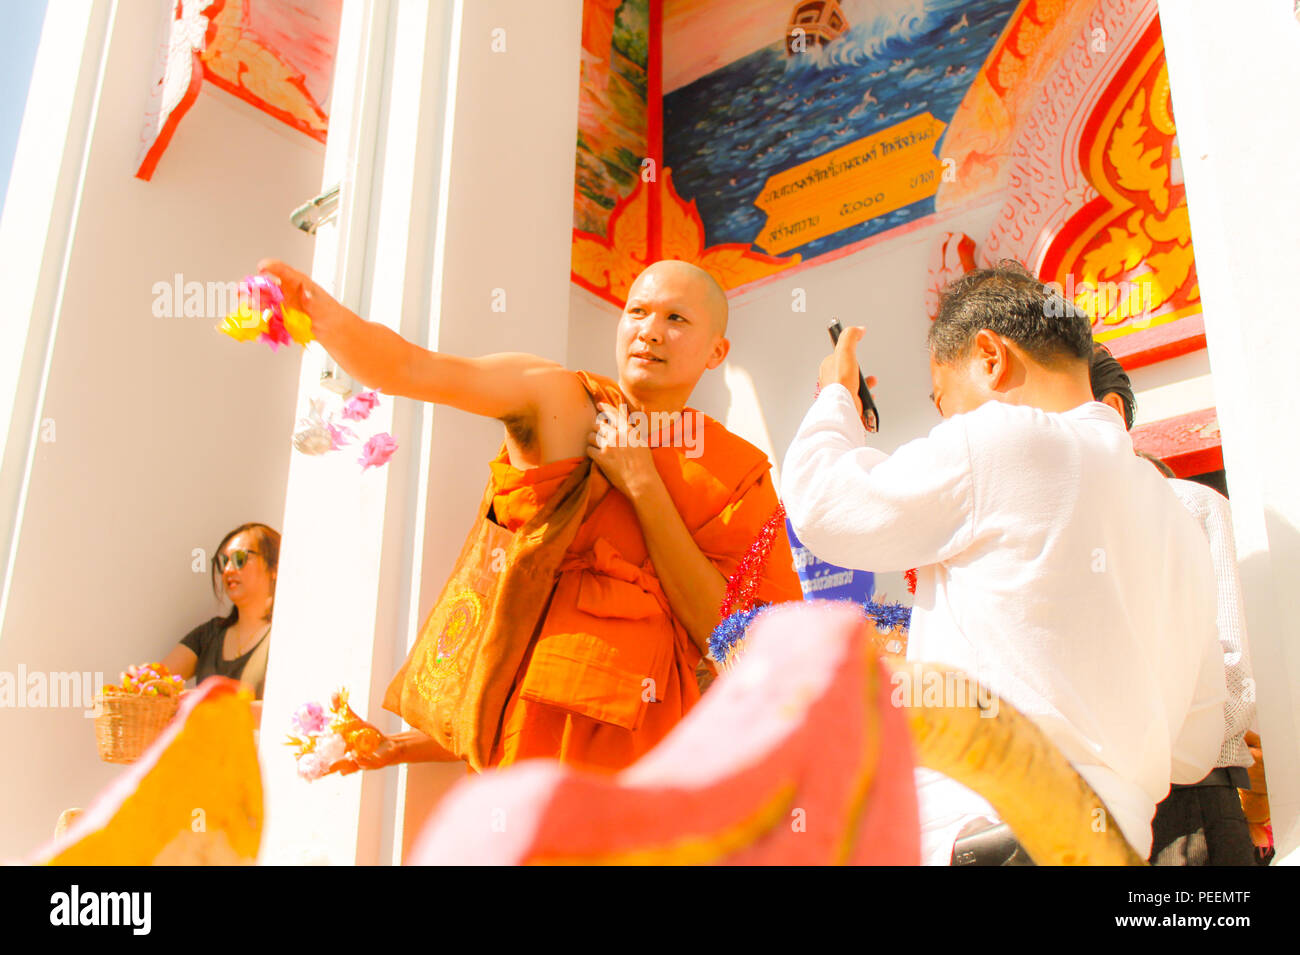 Ubon ratchathani, Thailand - Rookie monk and his relatives scattering donate alms flowers (wrapped money) at Thai temple. - Stock Image